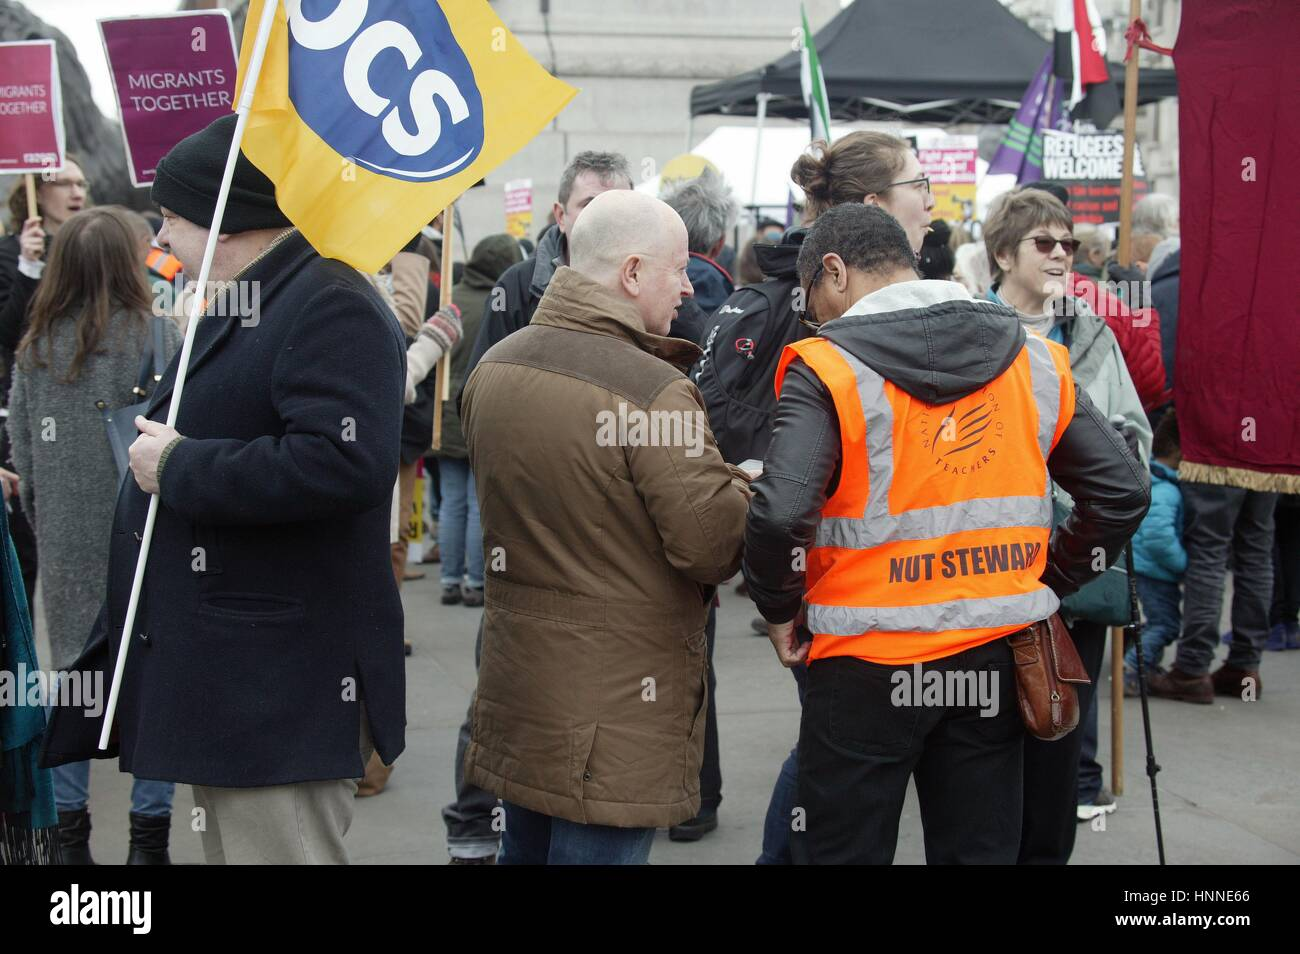 Refugees Welcome Here, Stand Up To Racism Protest at Trafalgar Square, London Stock Photo